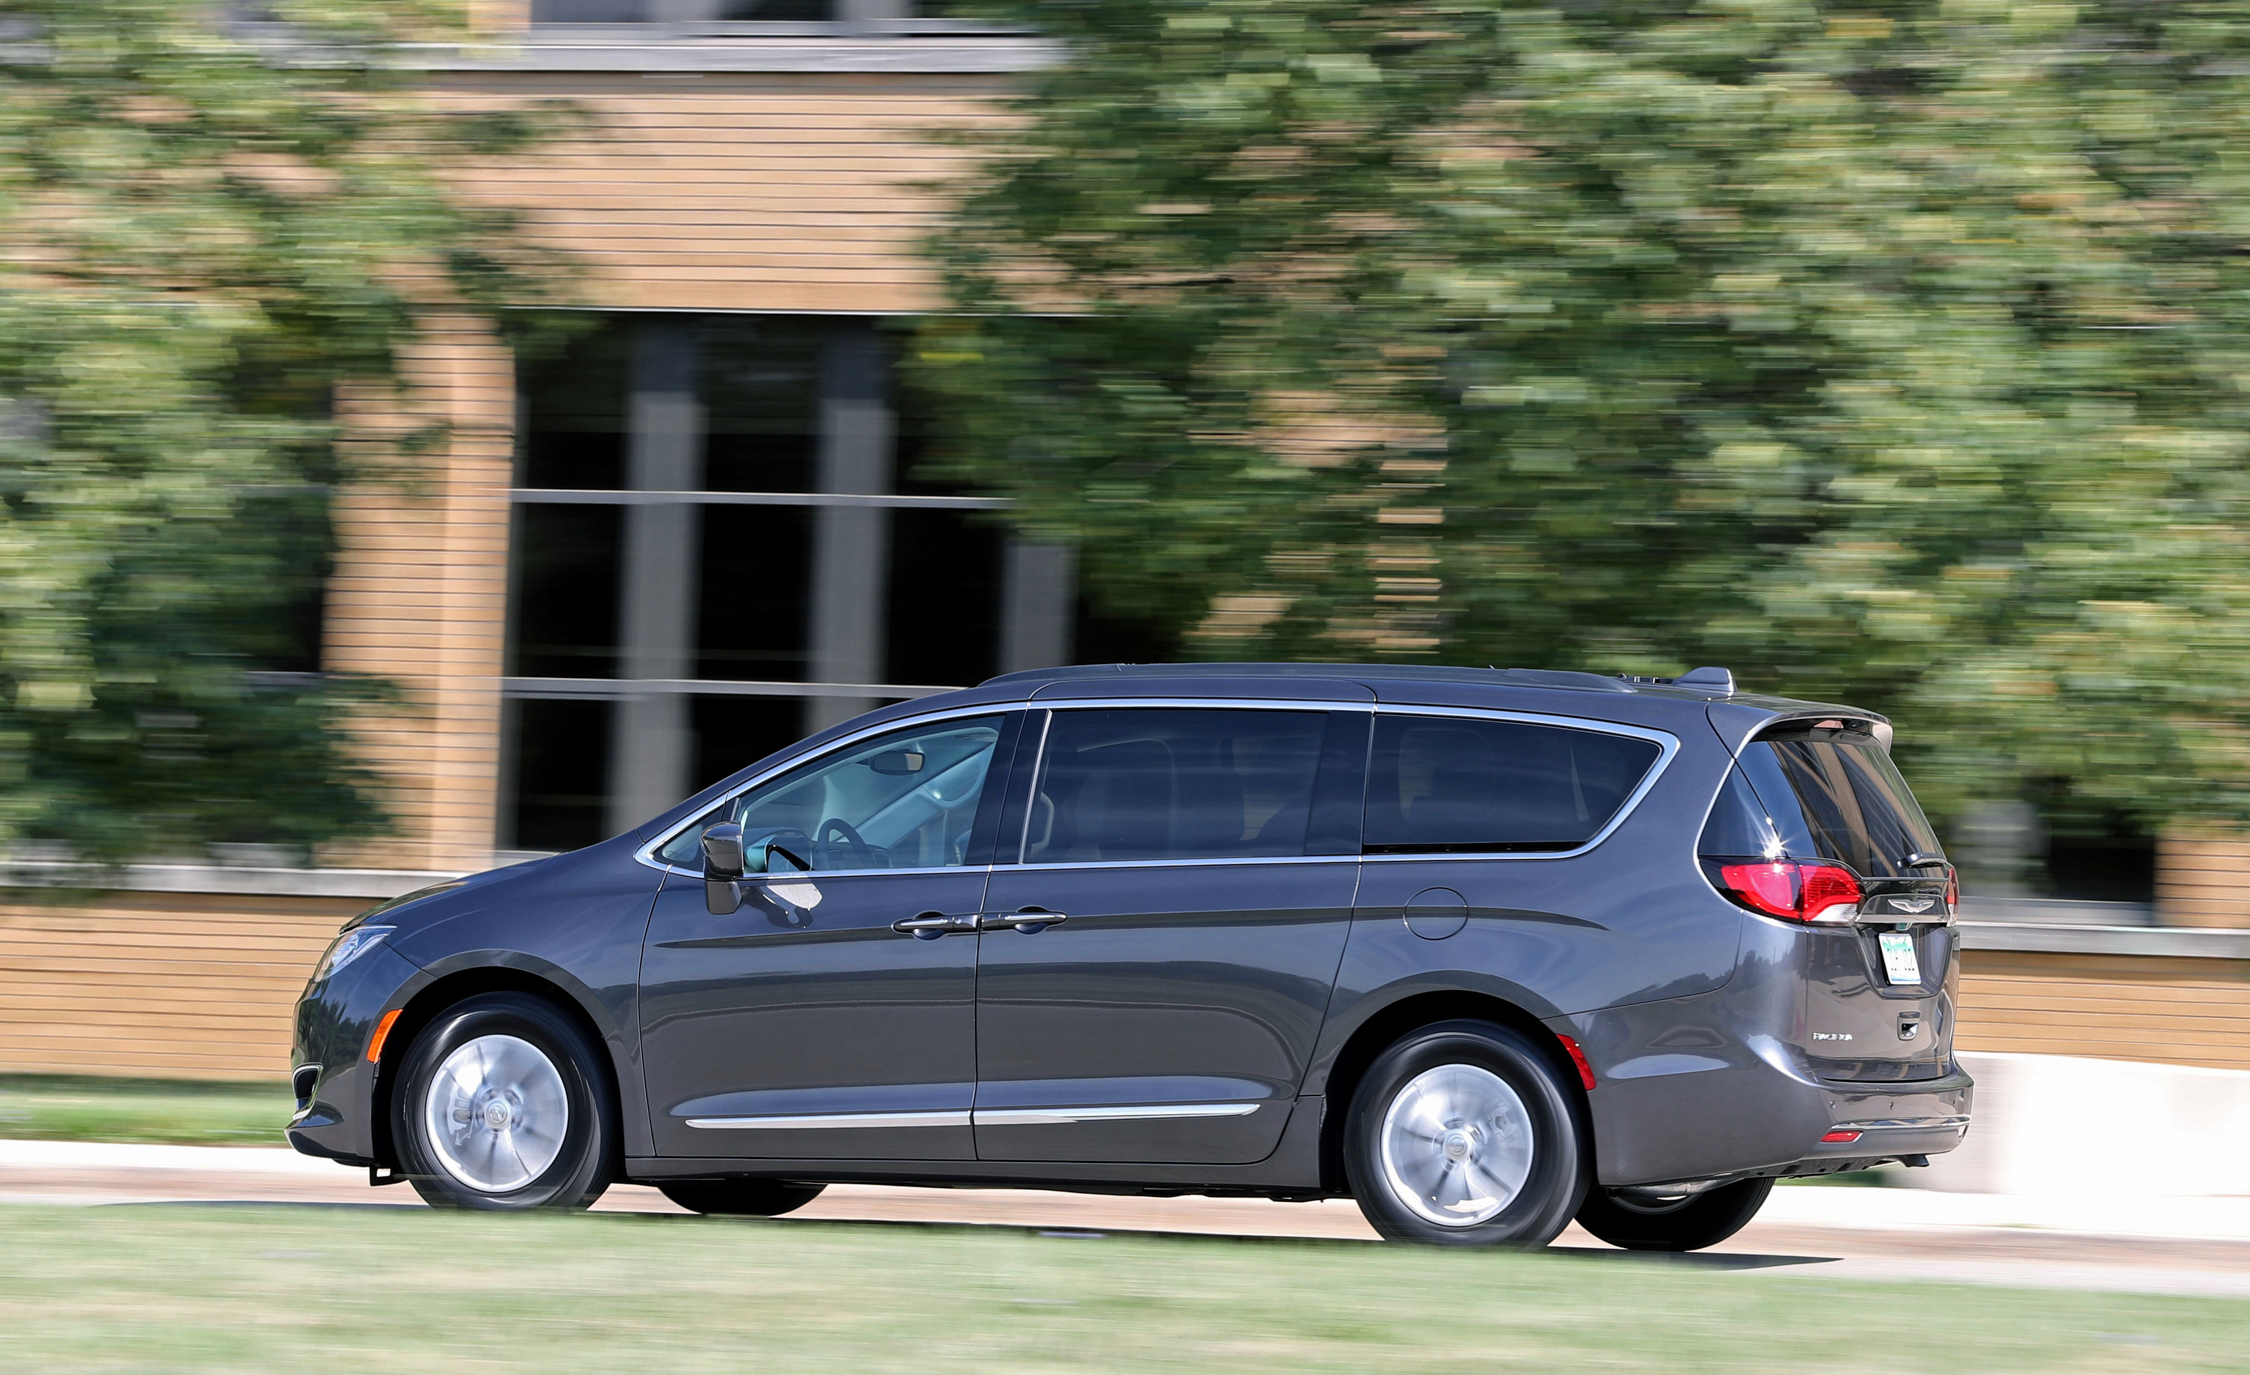 2017 Chrysler Pacifica Touring L Test Drive Preview (Photo 22 of 25)